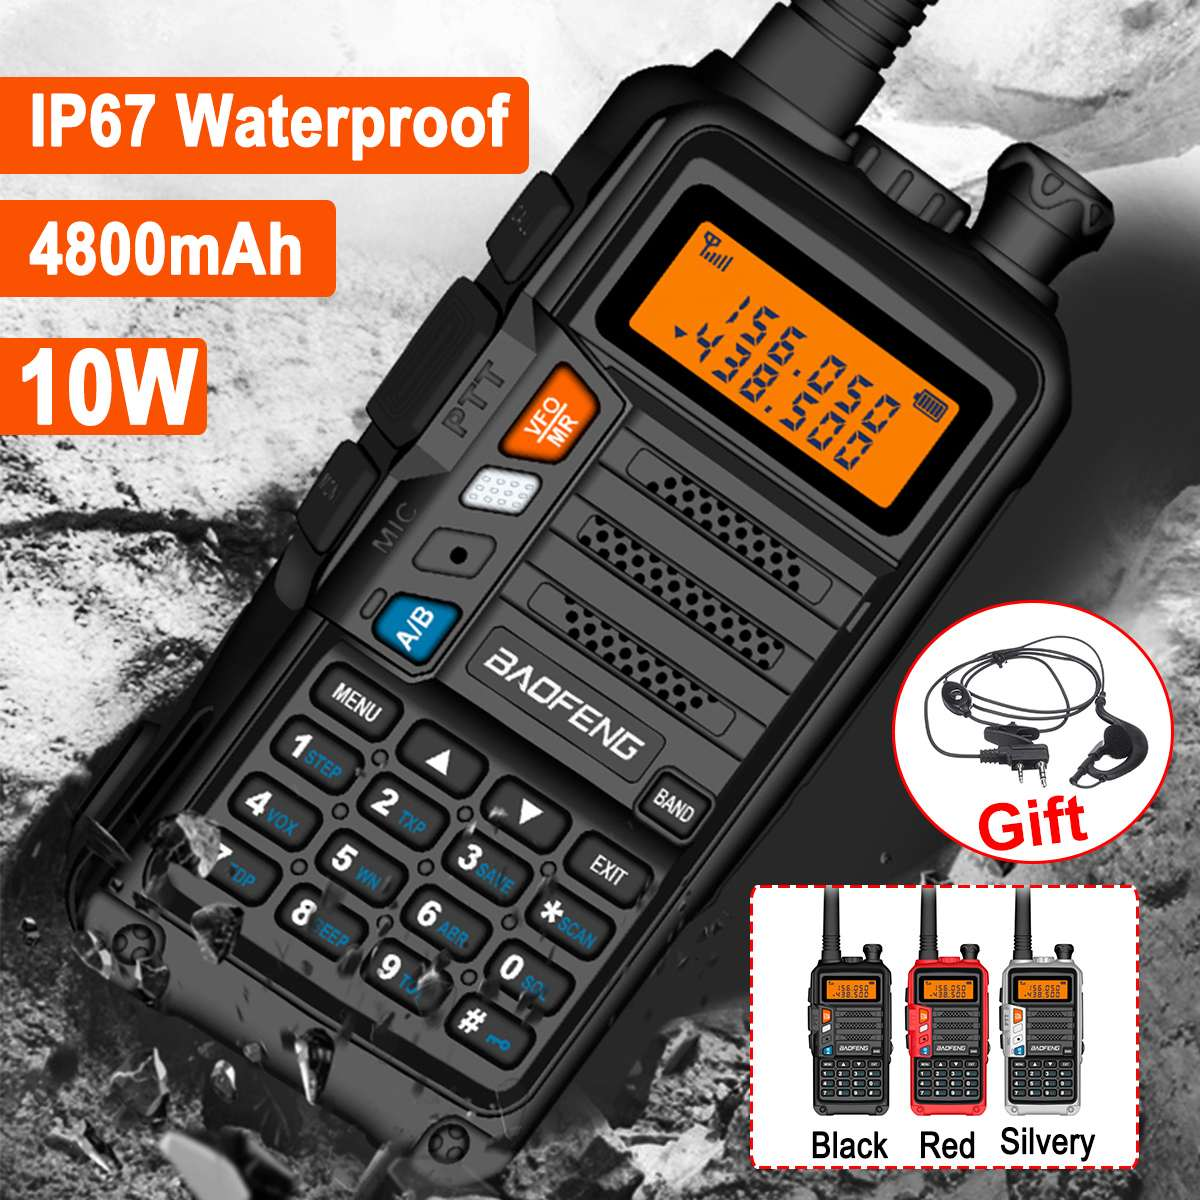 Walkie Talkie USB Charger Cable With Indicator Light 10W Walkie Talkie With Headphones IP67 Waterproof 4800mAh Battery